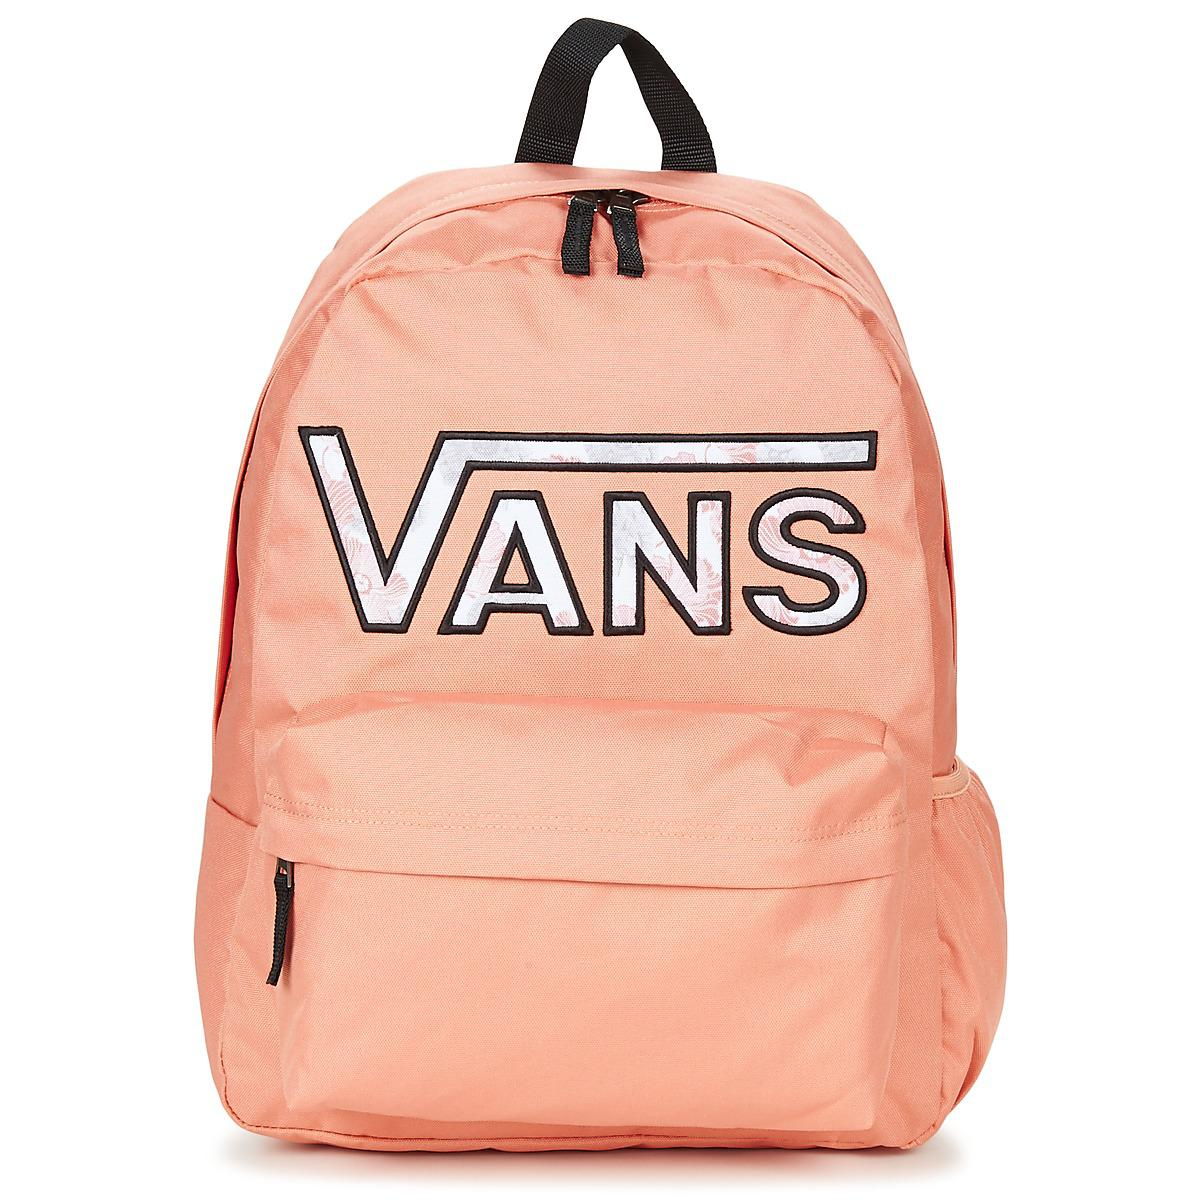 7eadb622 Vans Synthetic Realm Flying V Backpack Women's Backpack In Pink - Lyst